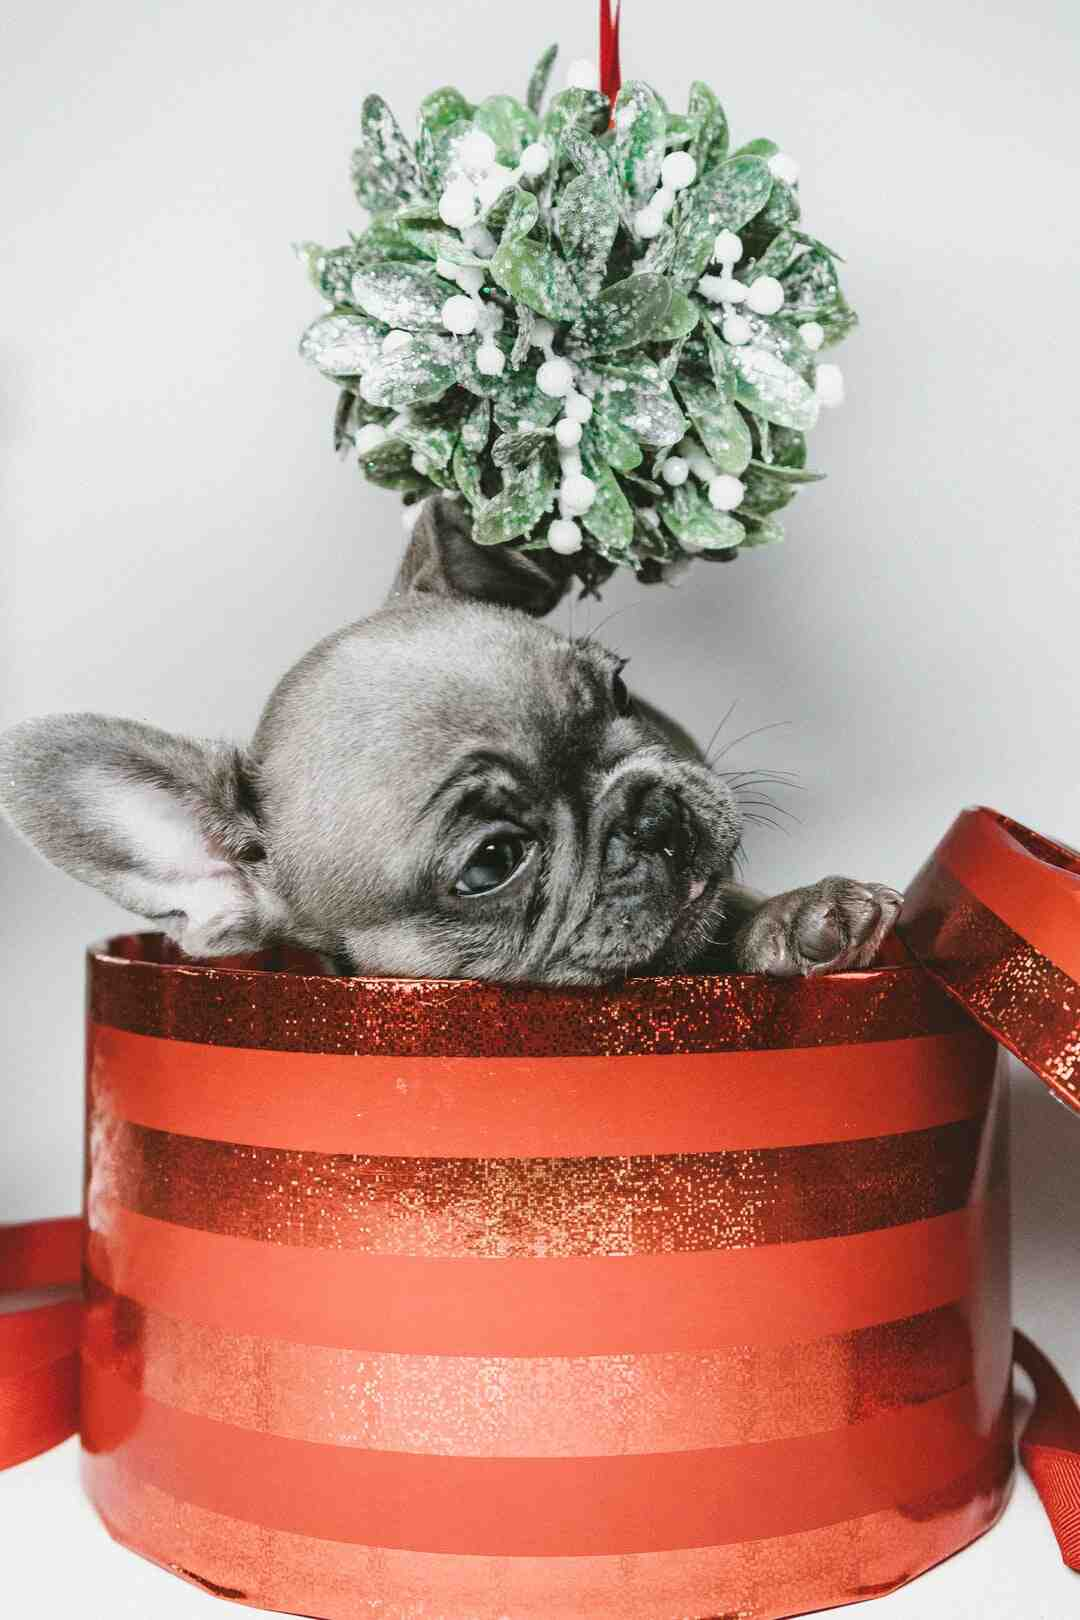 How to Give a Puppy As a Christmas Gift